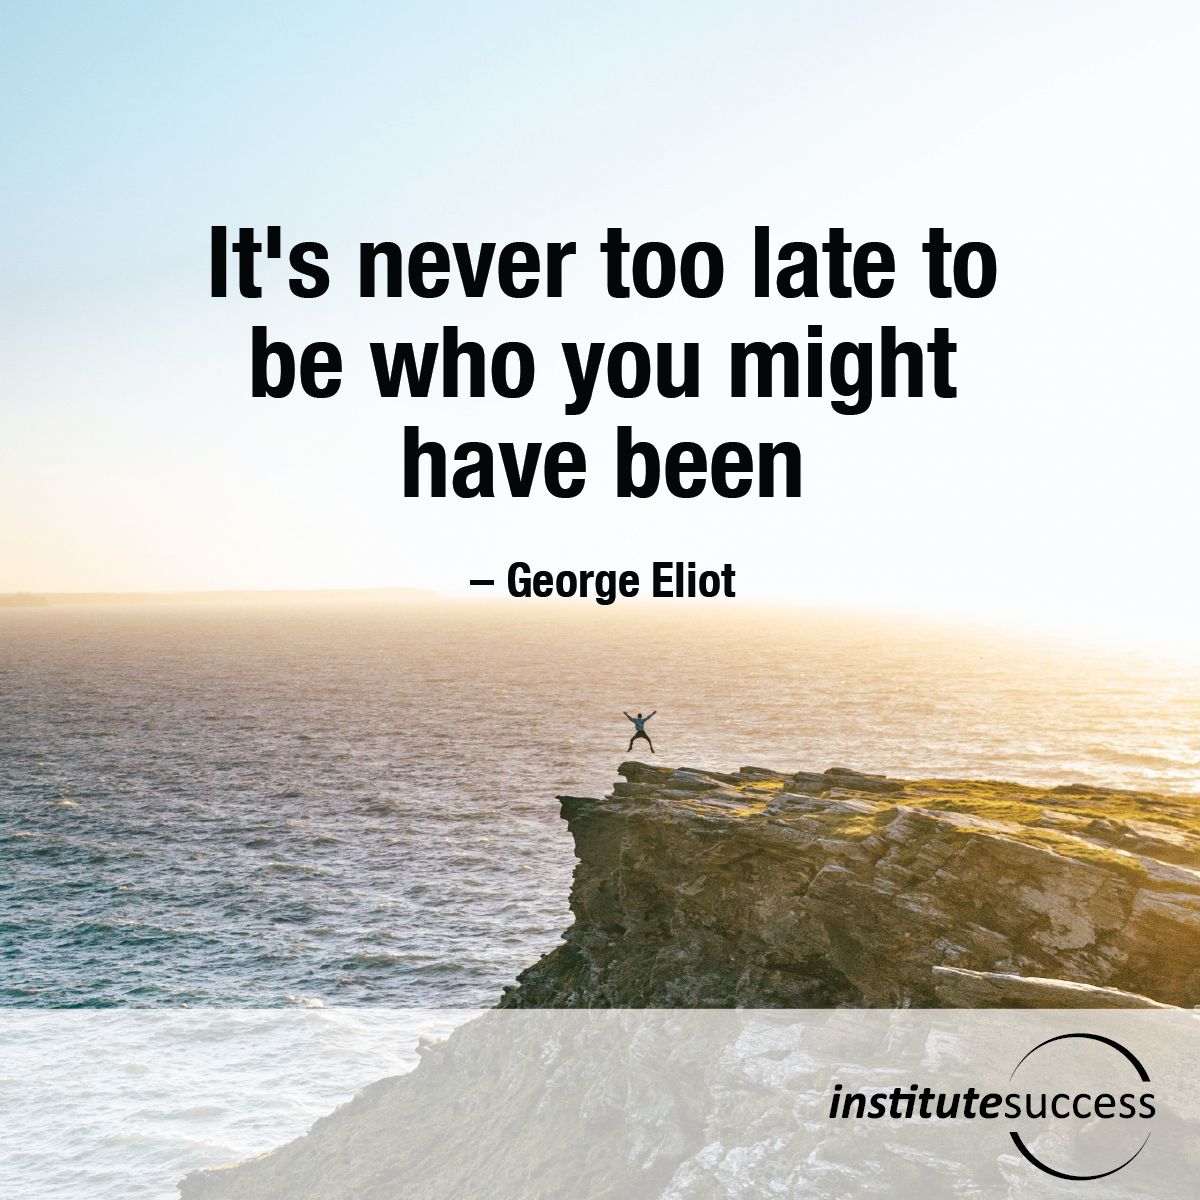 Its Never Too Late To Be Who You Might Have Been George Eliot